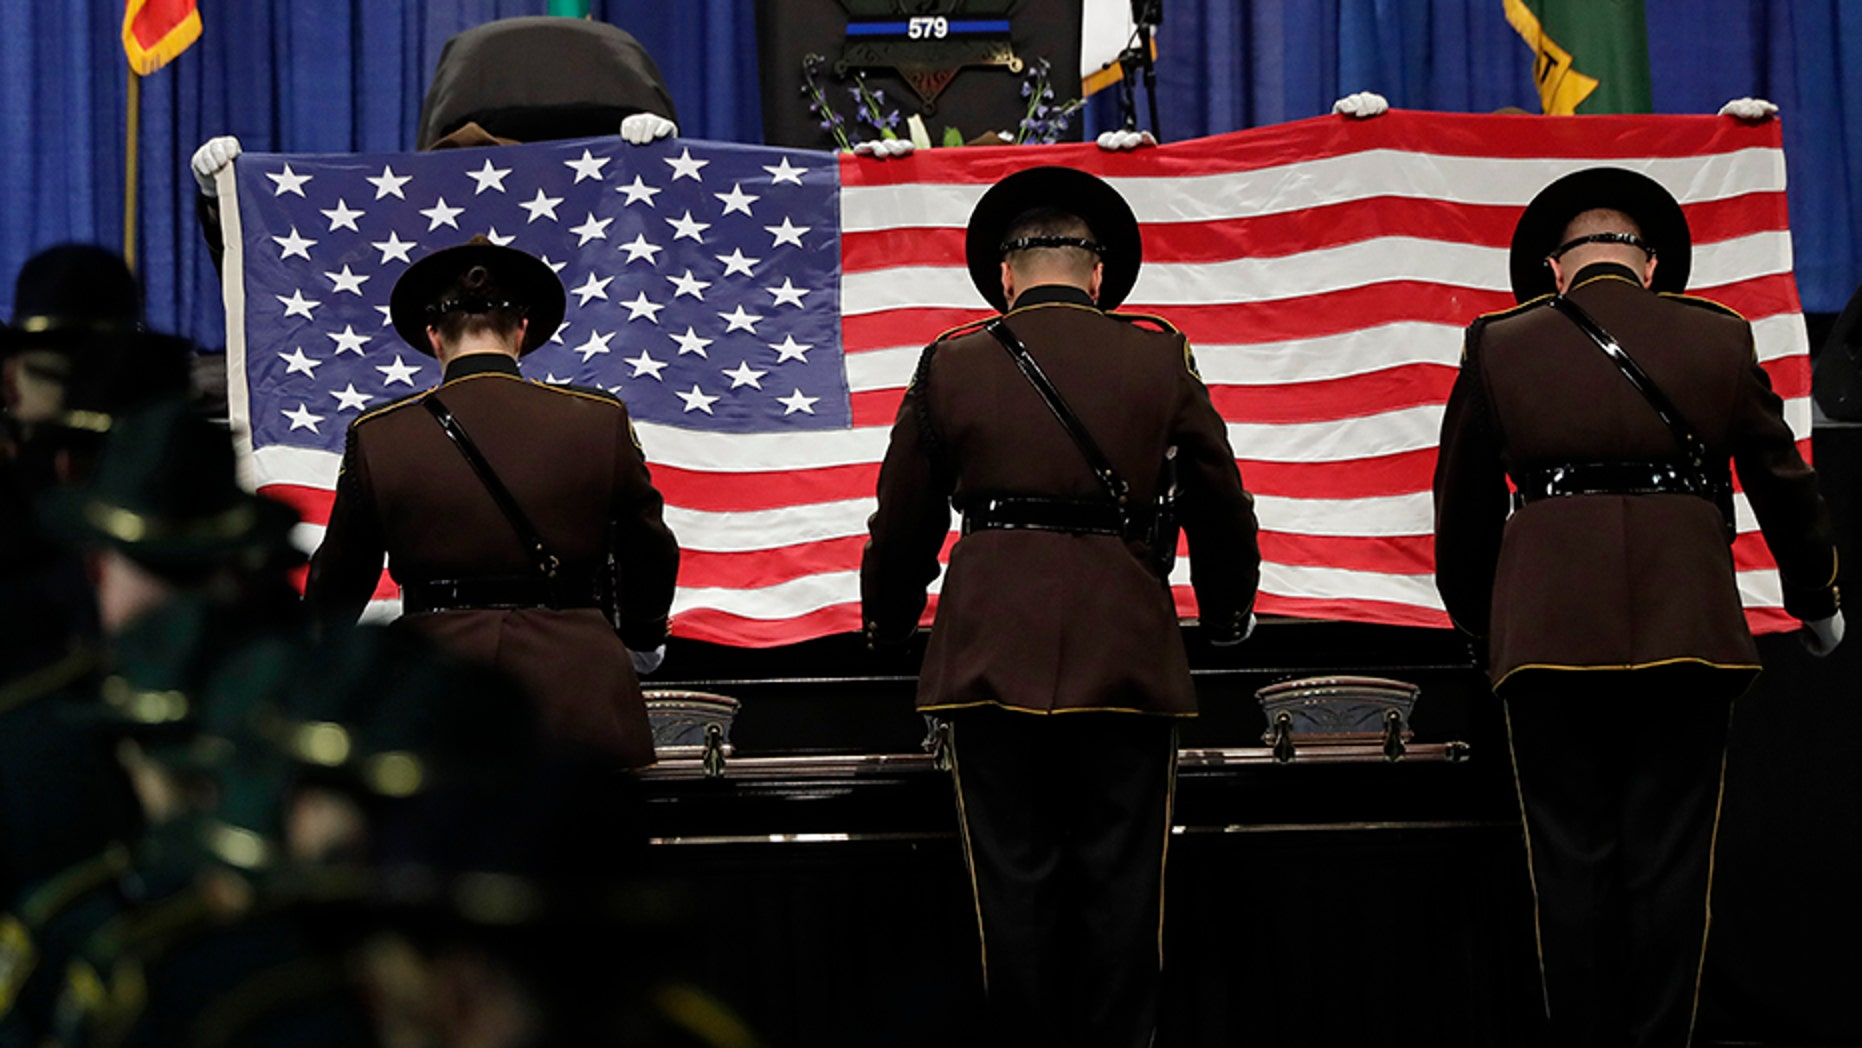 Pierce County Sheriff's deputies fold the U.S. flag that draped the casket of Pierce County Sheriff's Deputy Cooper Dyson, on Monday, Dec. 30, during a memorial service in Tacoma, Wash. (AP)